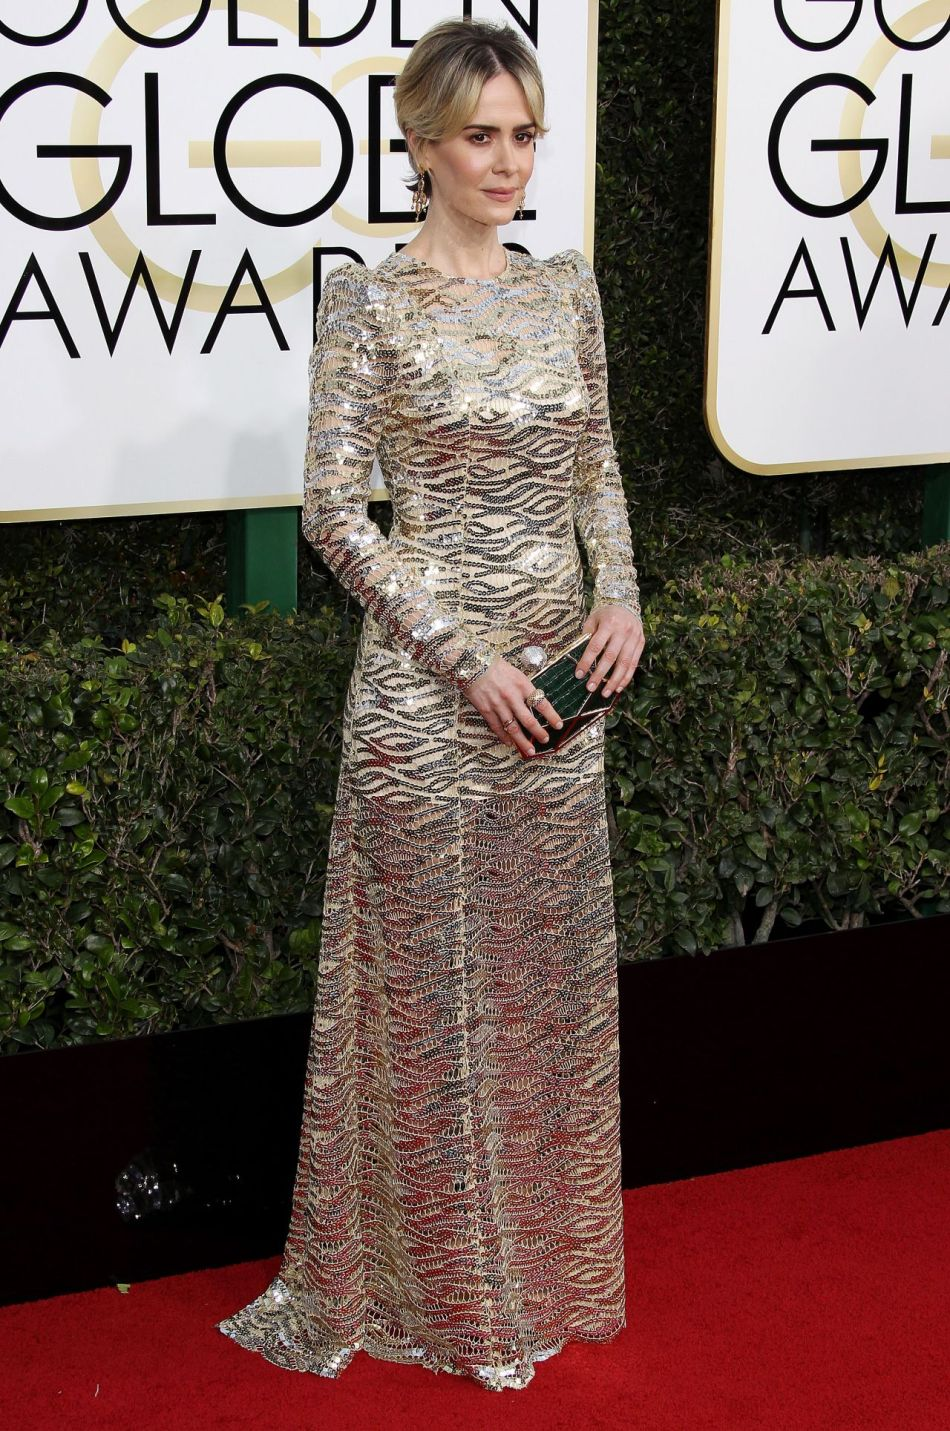 sarah-paulson-in-marc-jacobs-at-2017-golden-globe-awards-in-beverly-hills-1